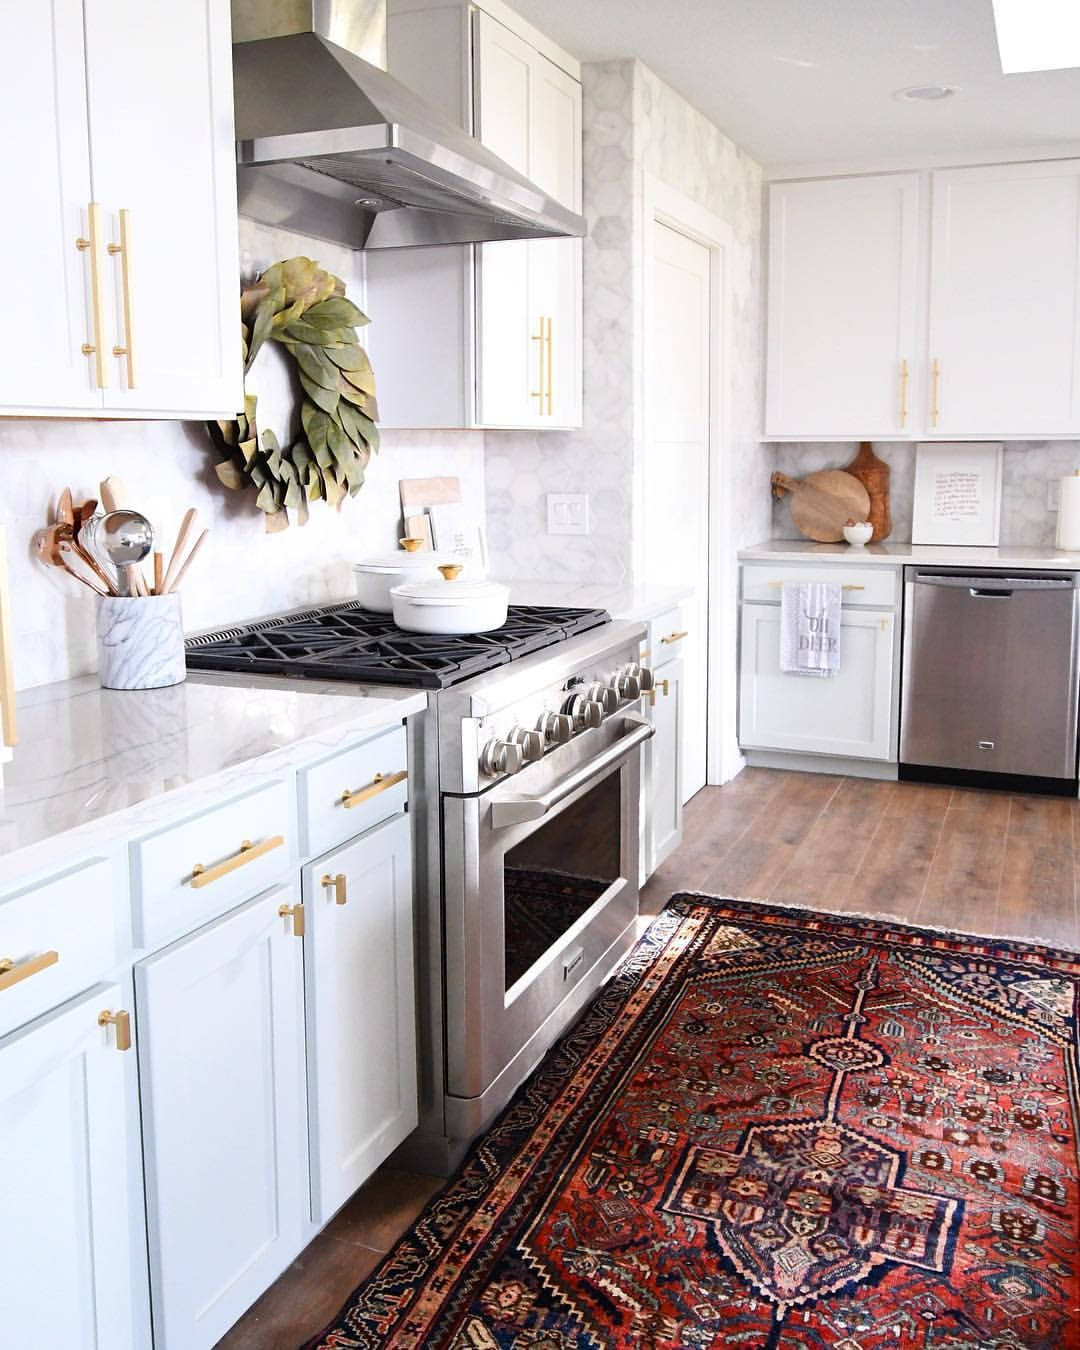 White Kitchen Cabinets Maintenance: Pin By Megan Frisbee On Kitchens In 2019